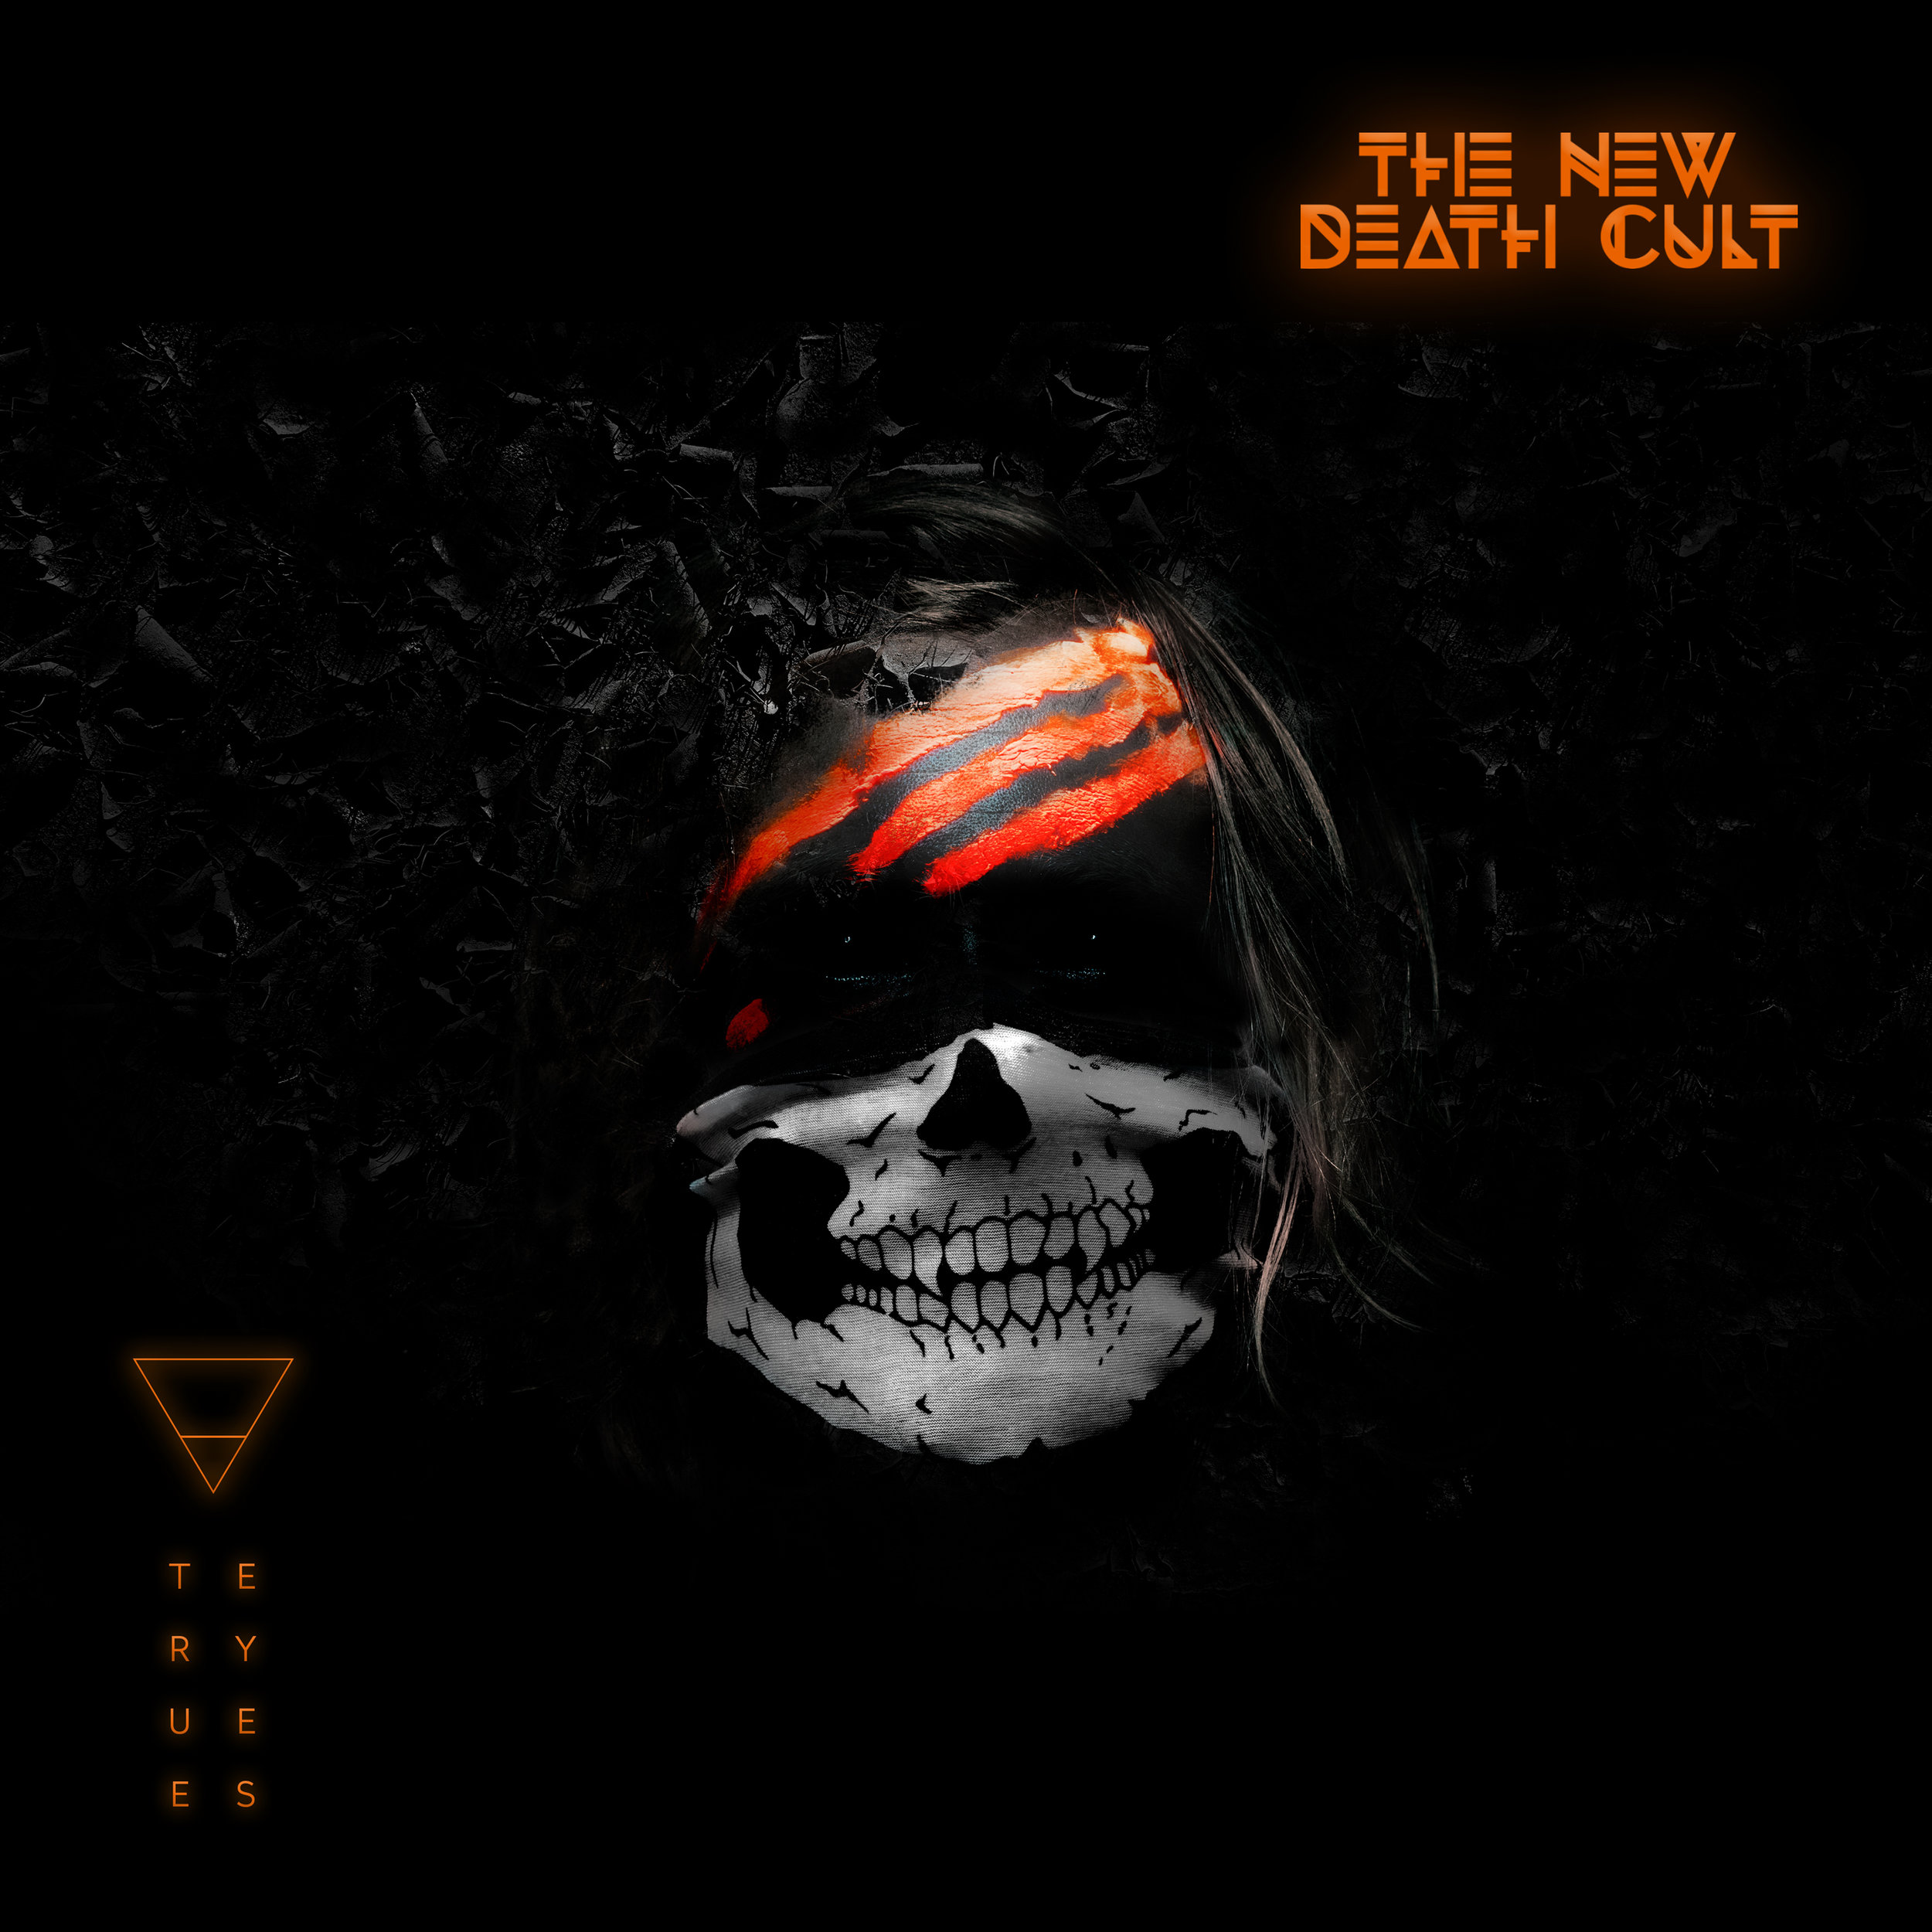 THE NEW DEATH CULT - True Eyes single cover